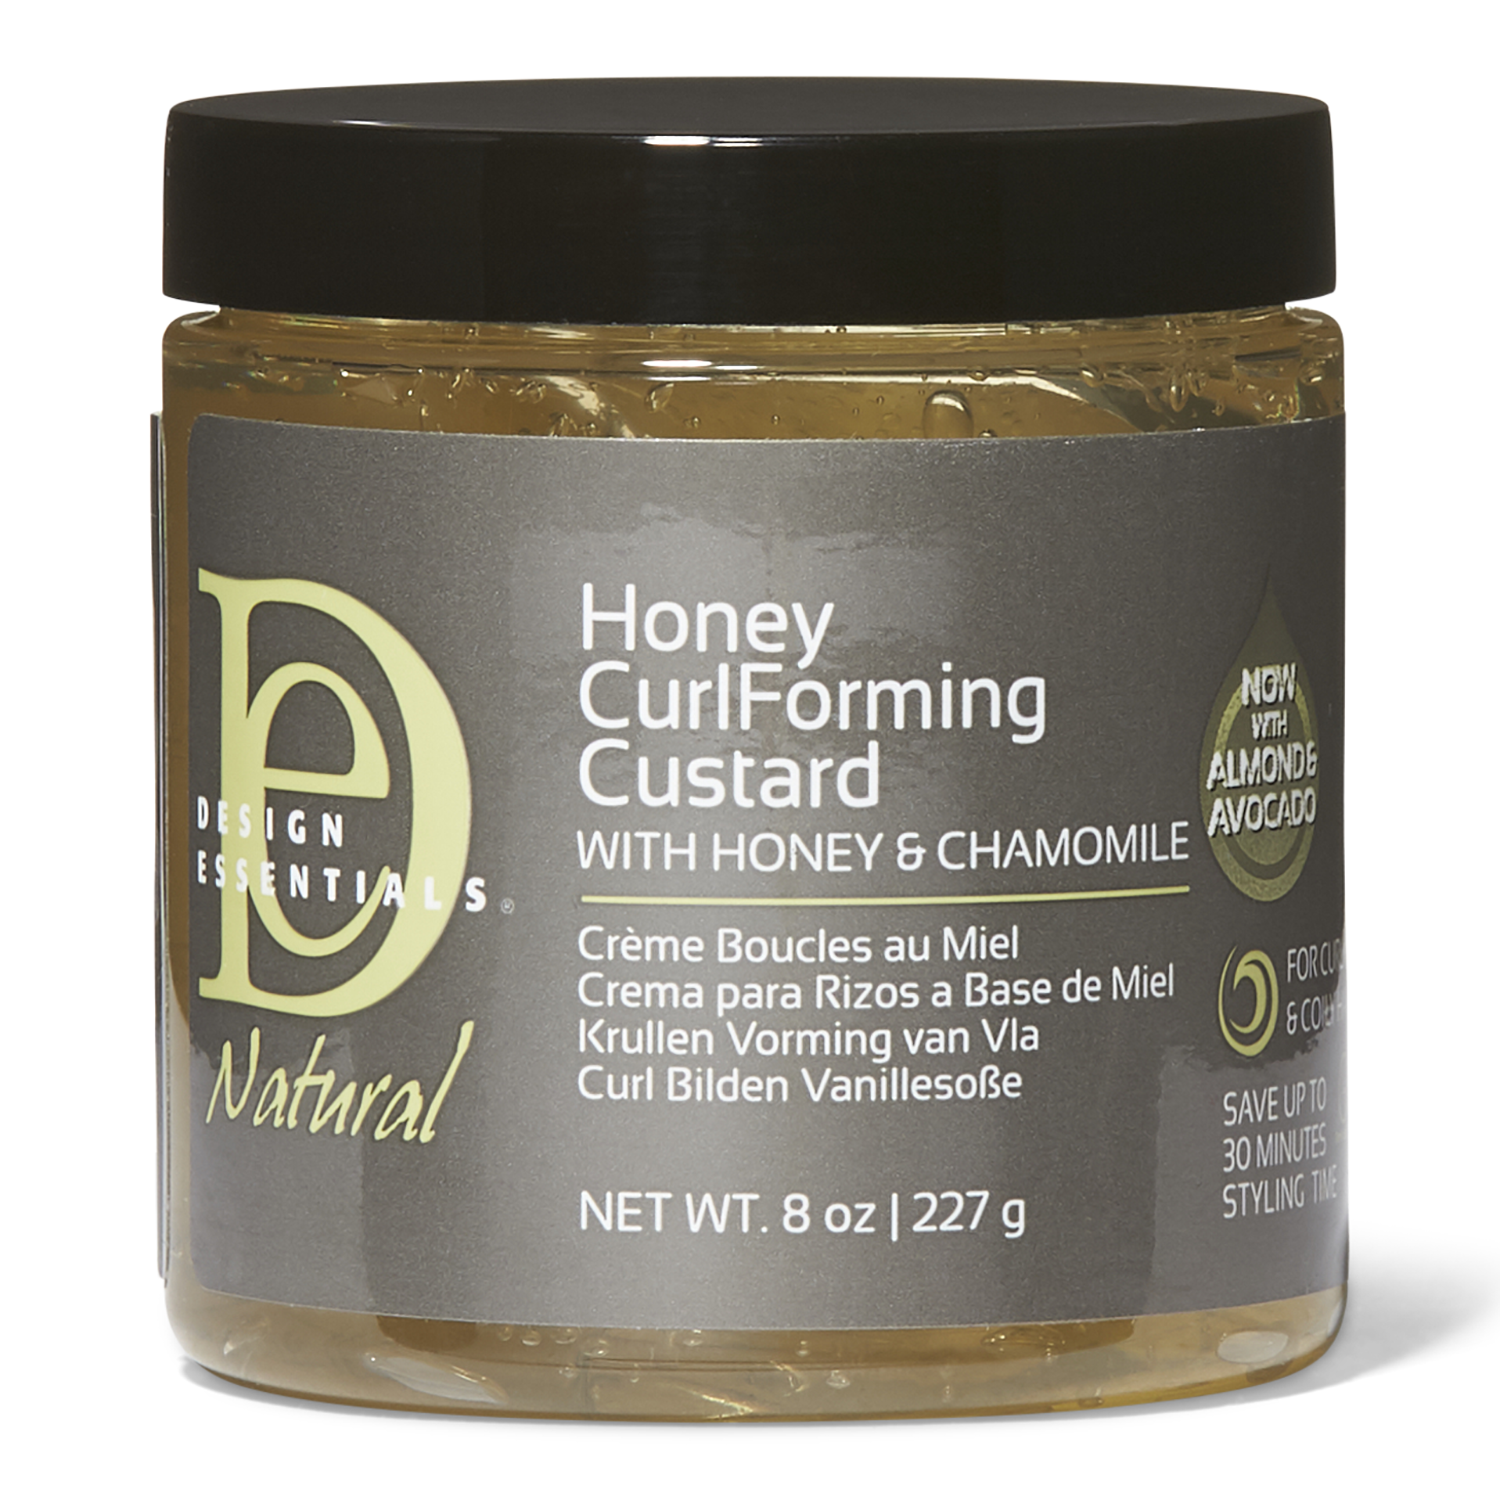 Sally Beauty coupon: Honey Curl Forming Custard